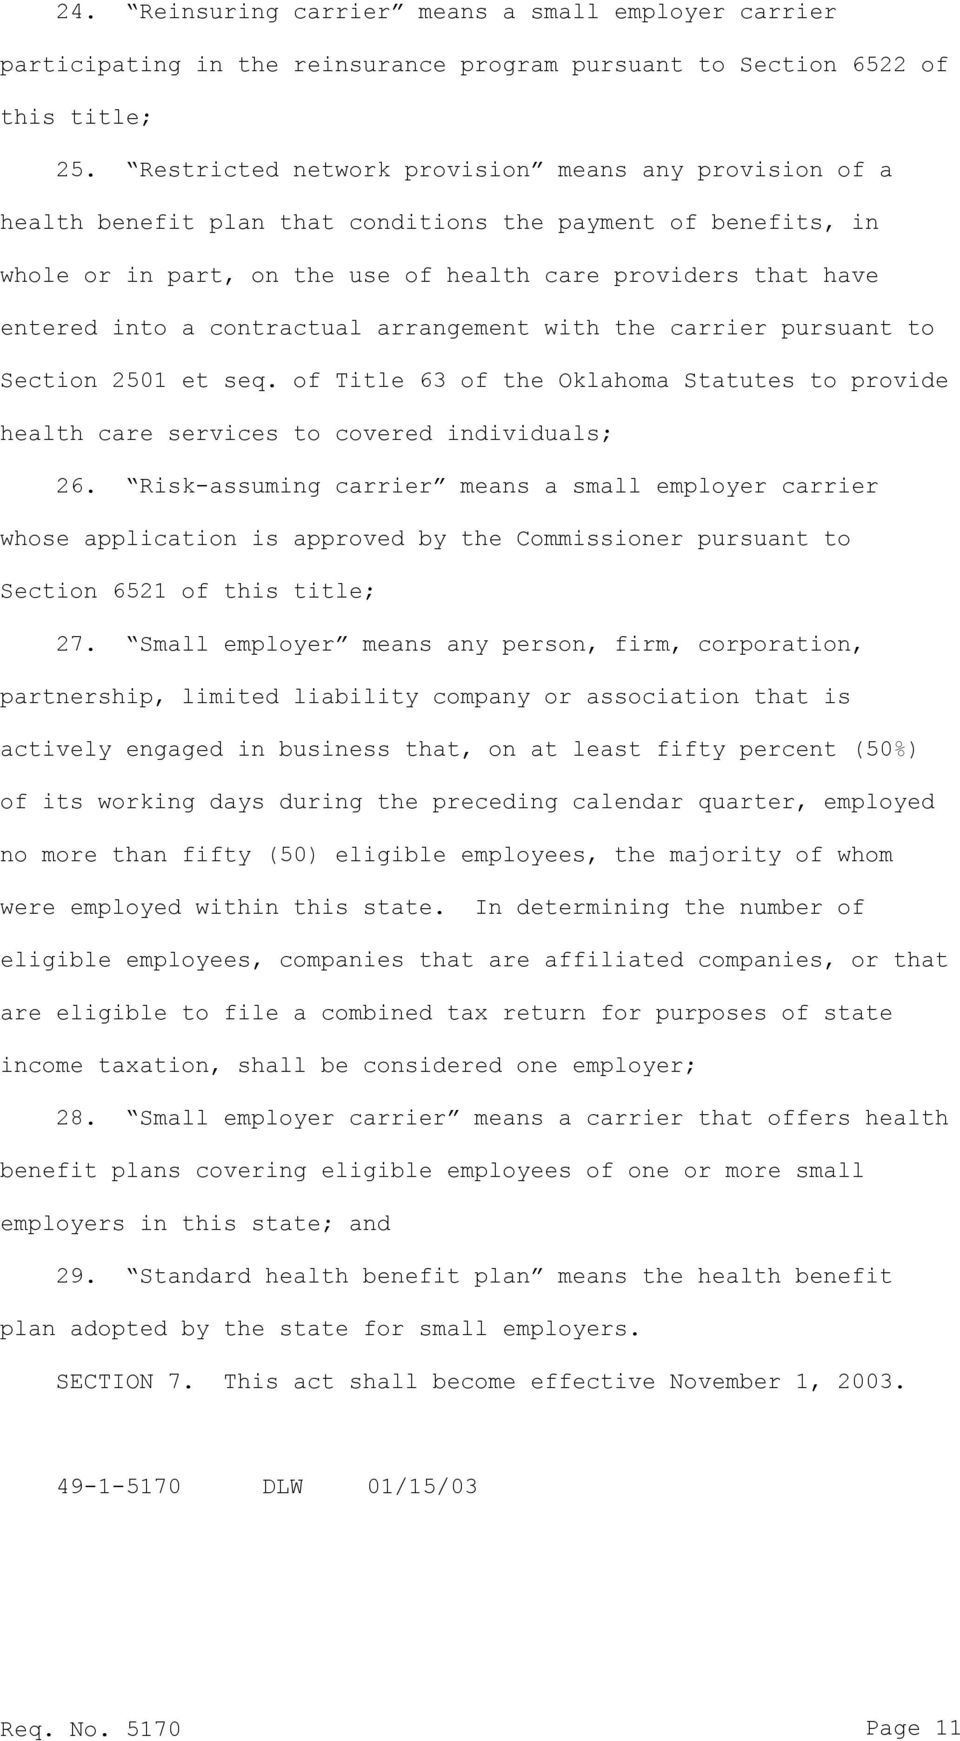 contractual arrangement with the carrier pursuant to Section 2501 et seq. of Title 63 of the Oklahoma Statutes to provide health care services to covered individuals; 26.